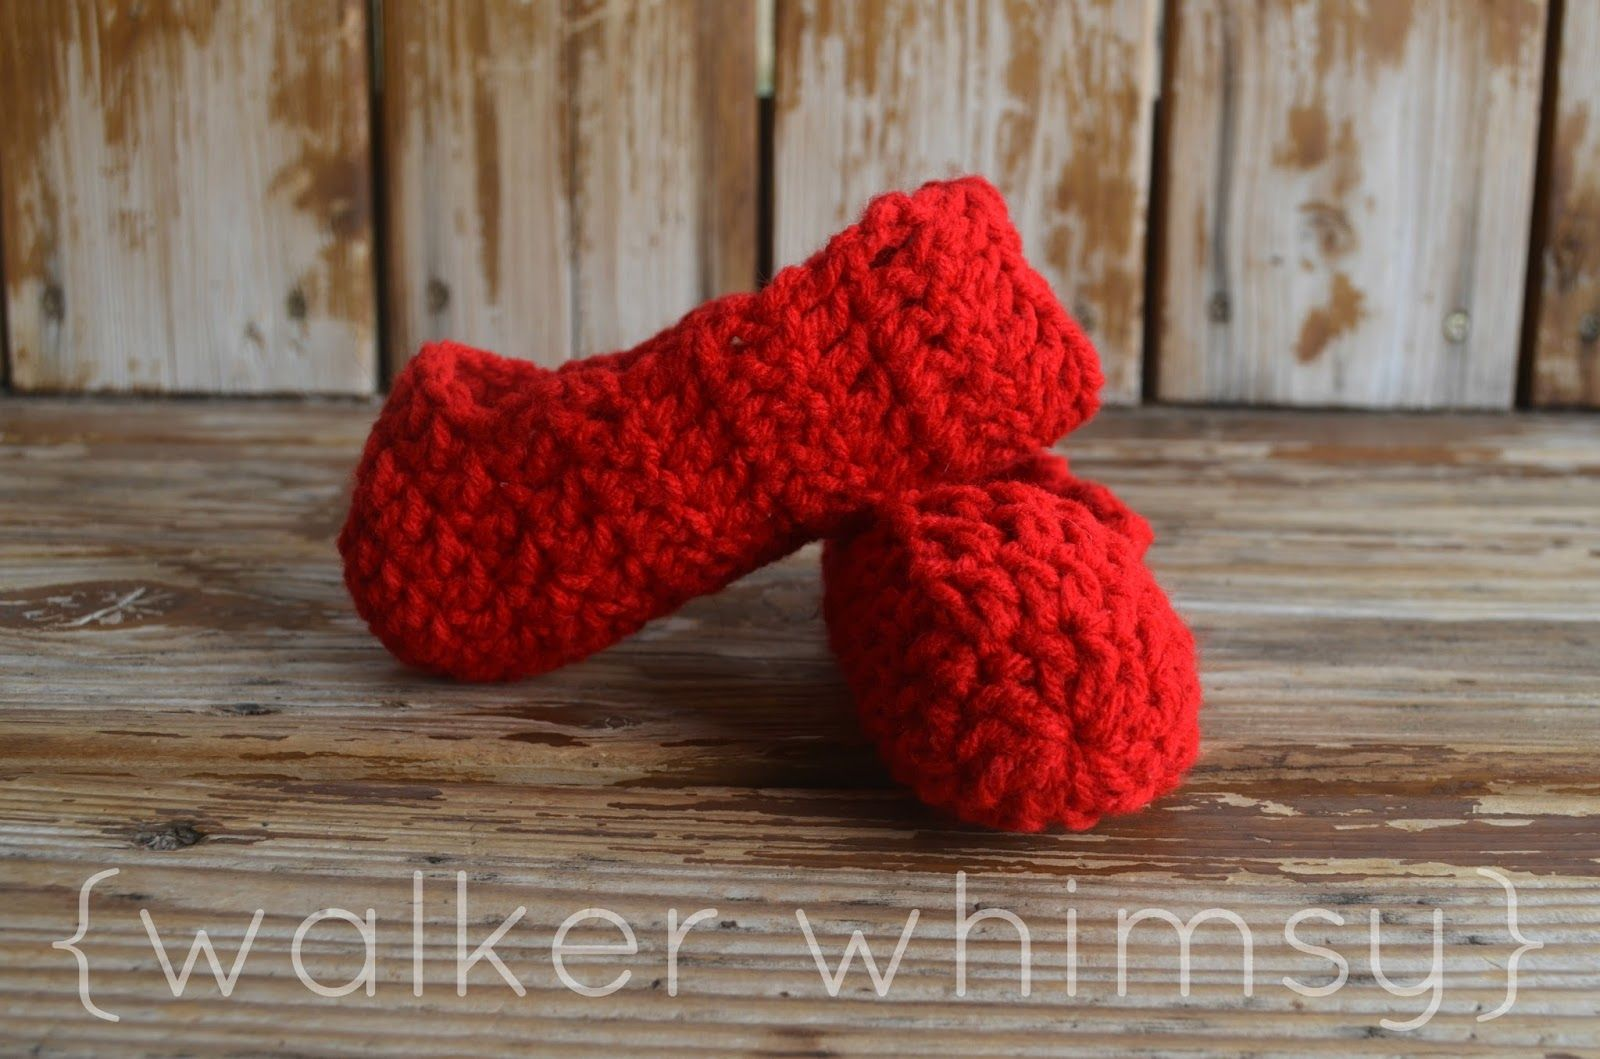 walker whimsy}: Crazy Easy Kid Slippers {POTM} | All About Crochet ...